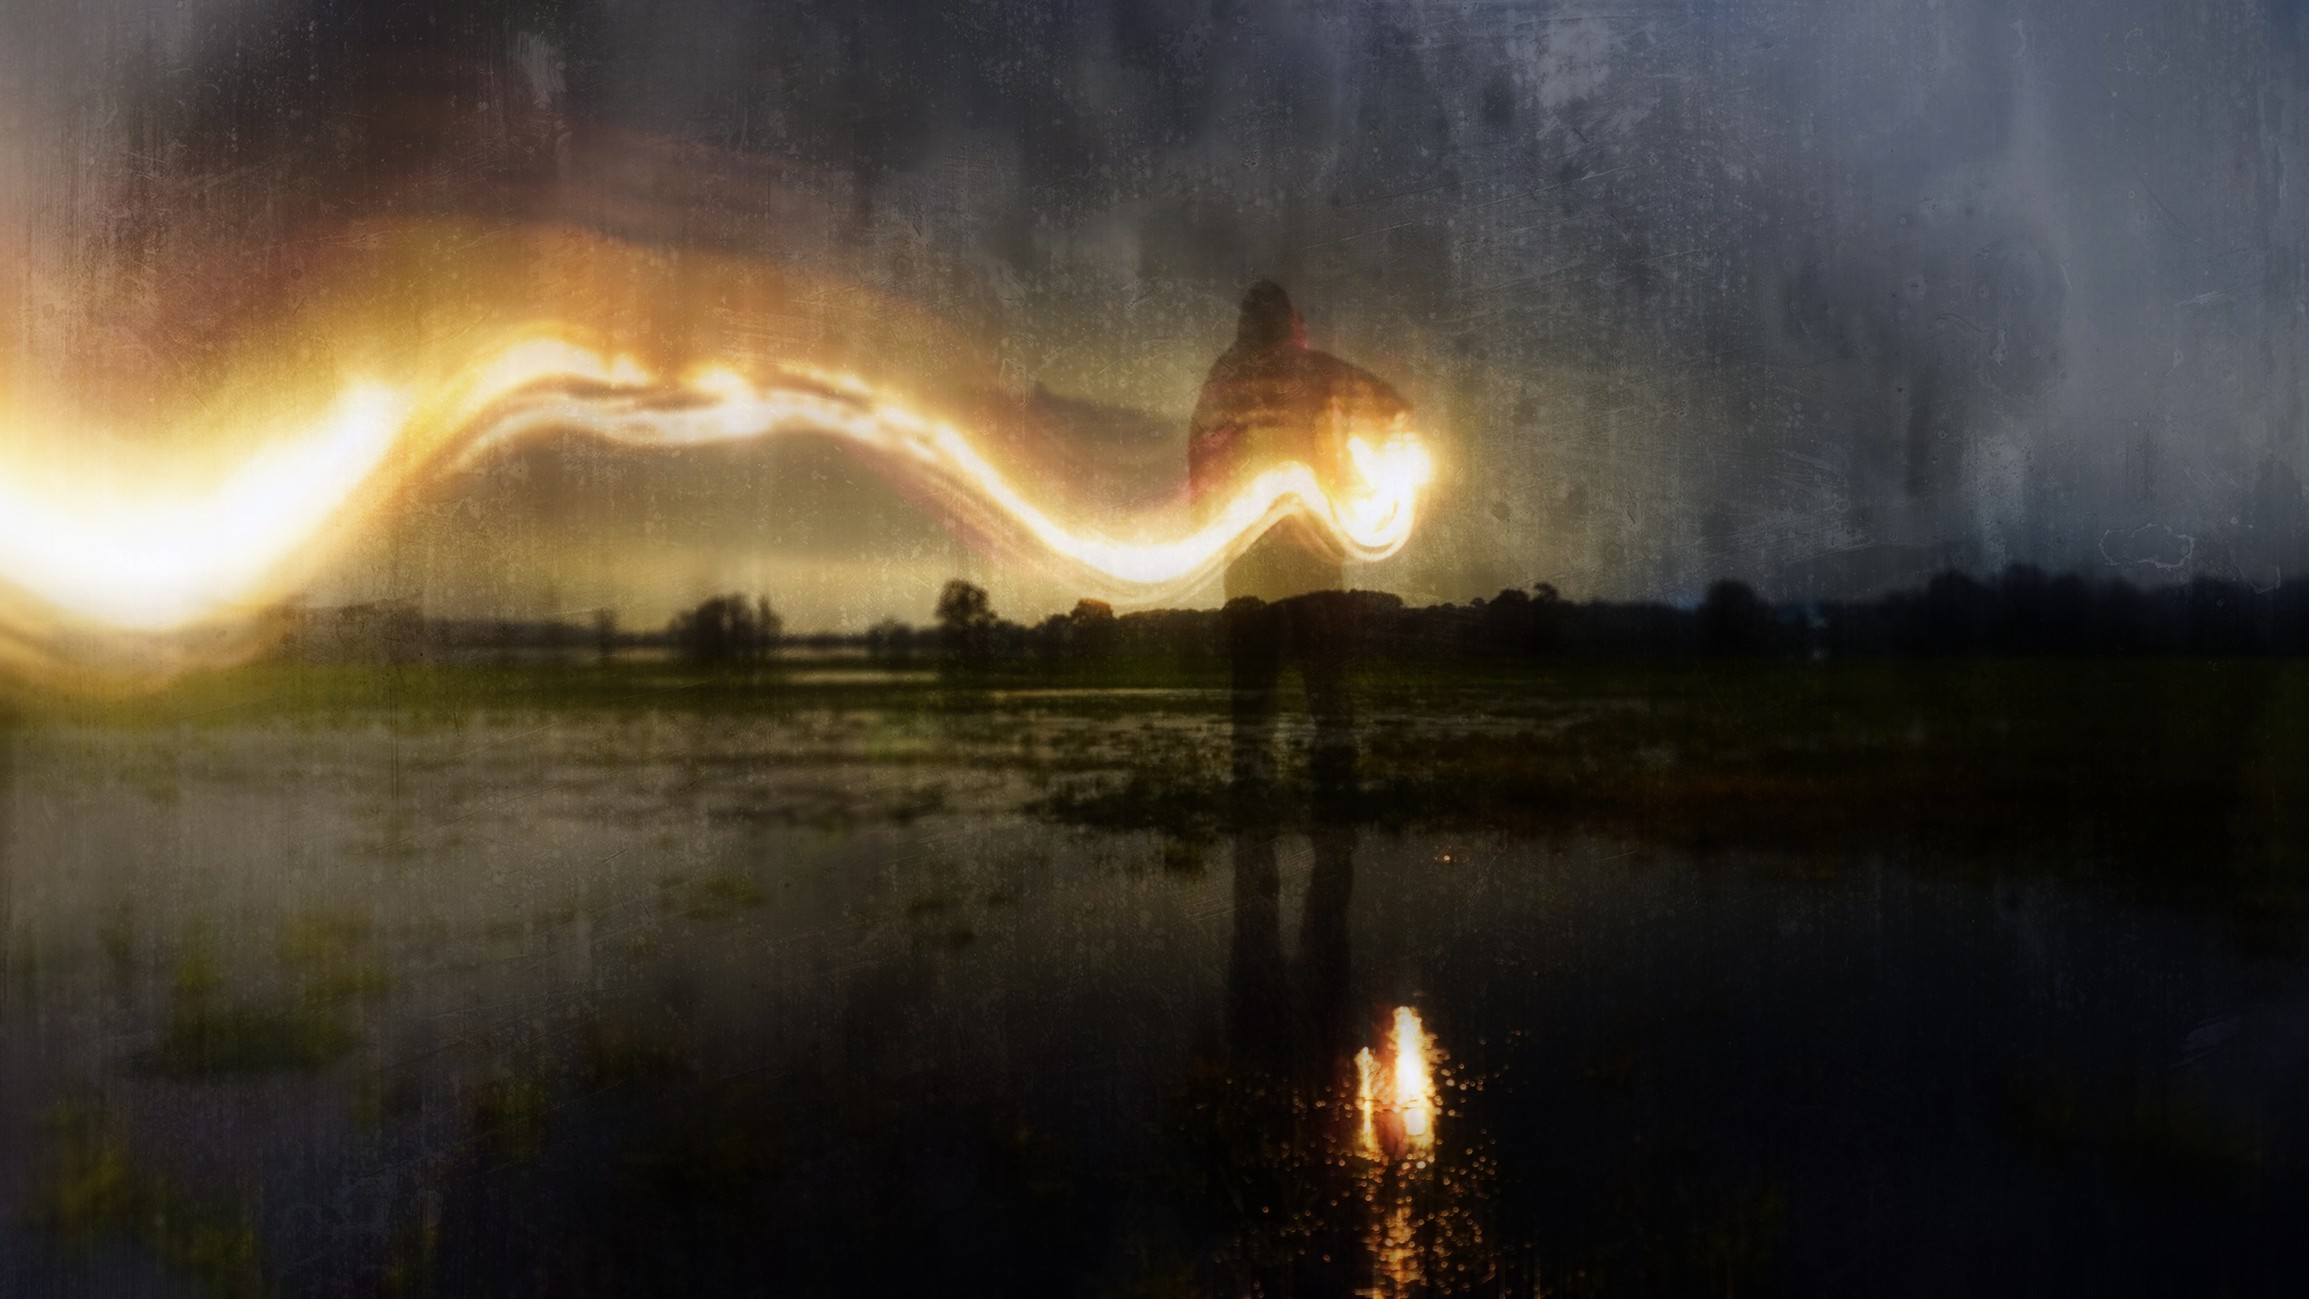 Watercolor-like double exposure photo of a person making light design in a dark atmosphere.